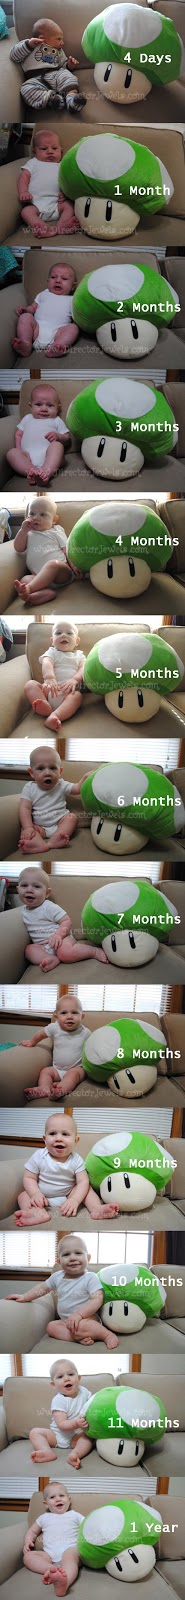 Monthly Baby Growth Photos - 1 Up, Nintendo, Super Mario Bros